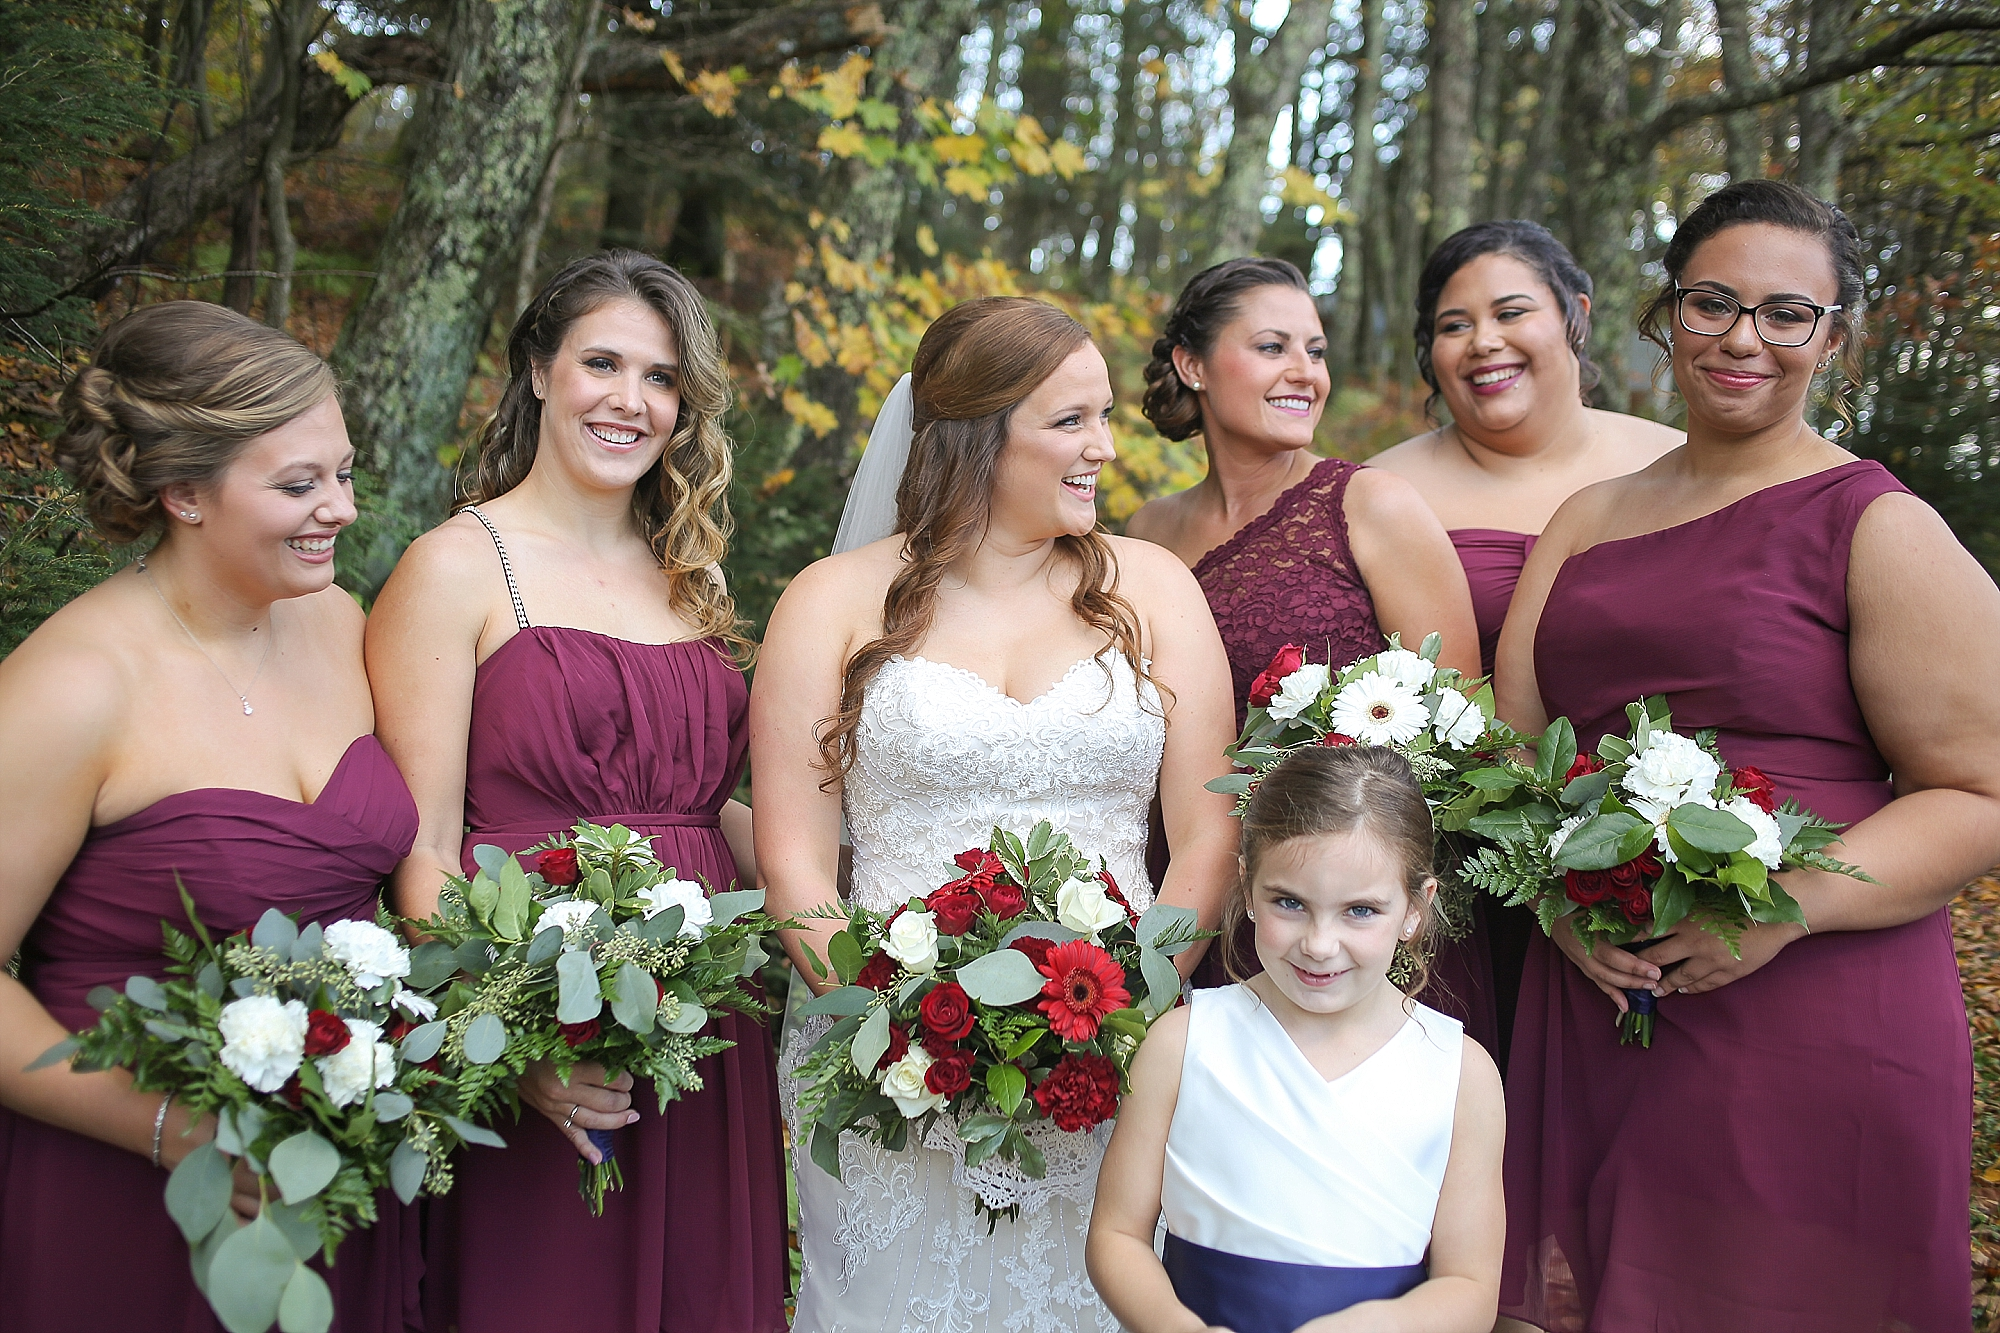 Virginia Wedding Photographers: Holly Cromer | Mountain Lake Wedding Photos